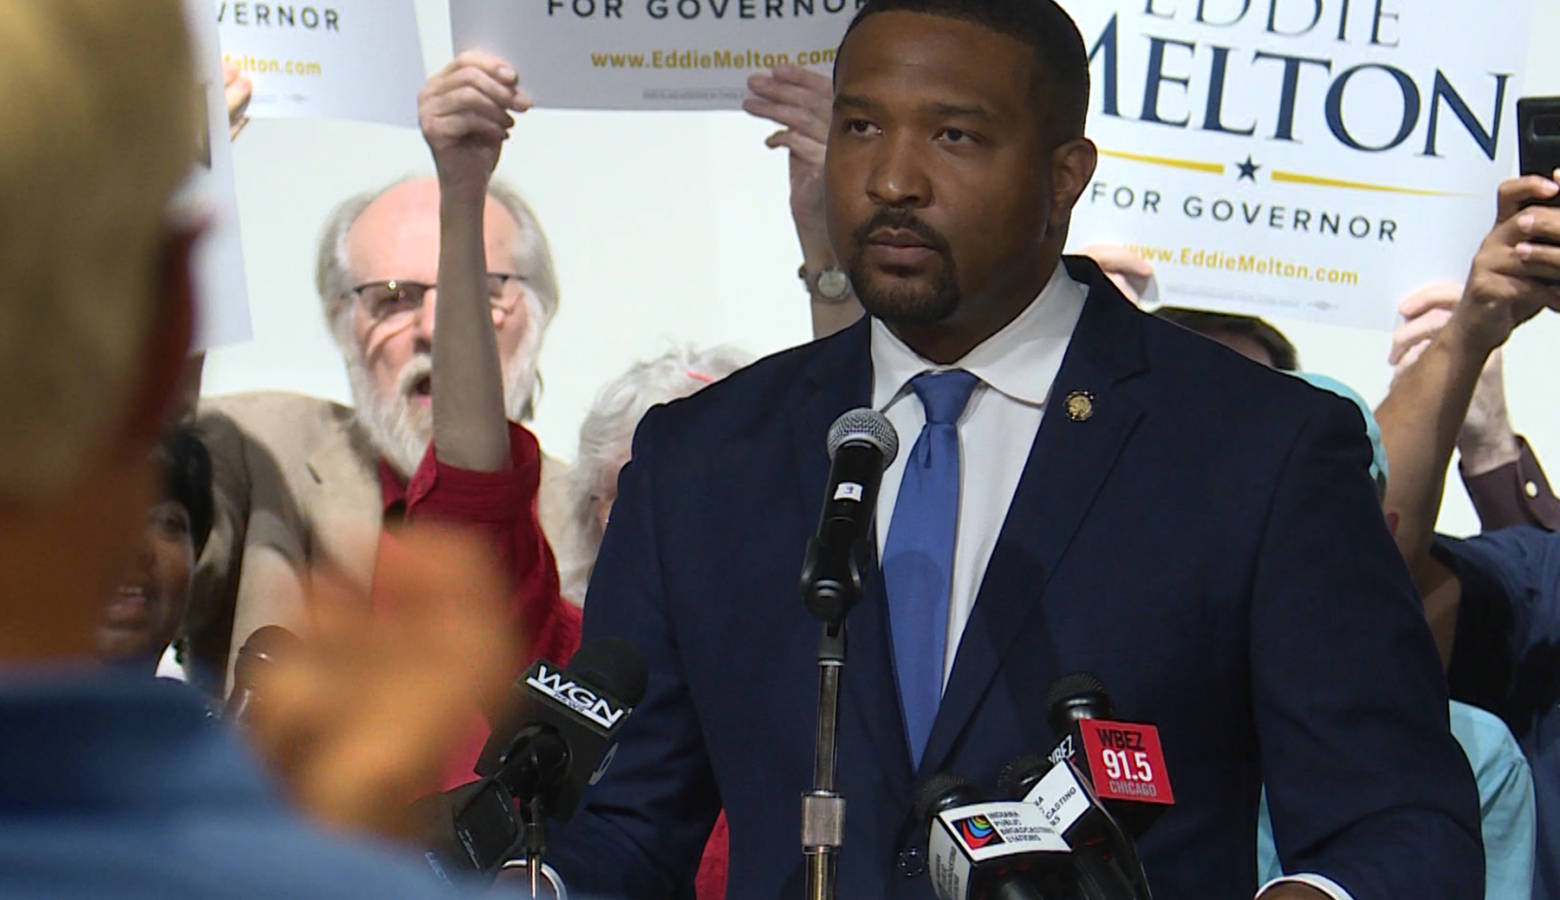 Sen. Eddie Melton (D-Gary) launched his gubernatorial bid in his hometown, with about 200 supporters cheering him on. (Lauren Chapman/IPB News)